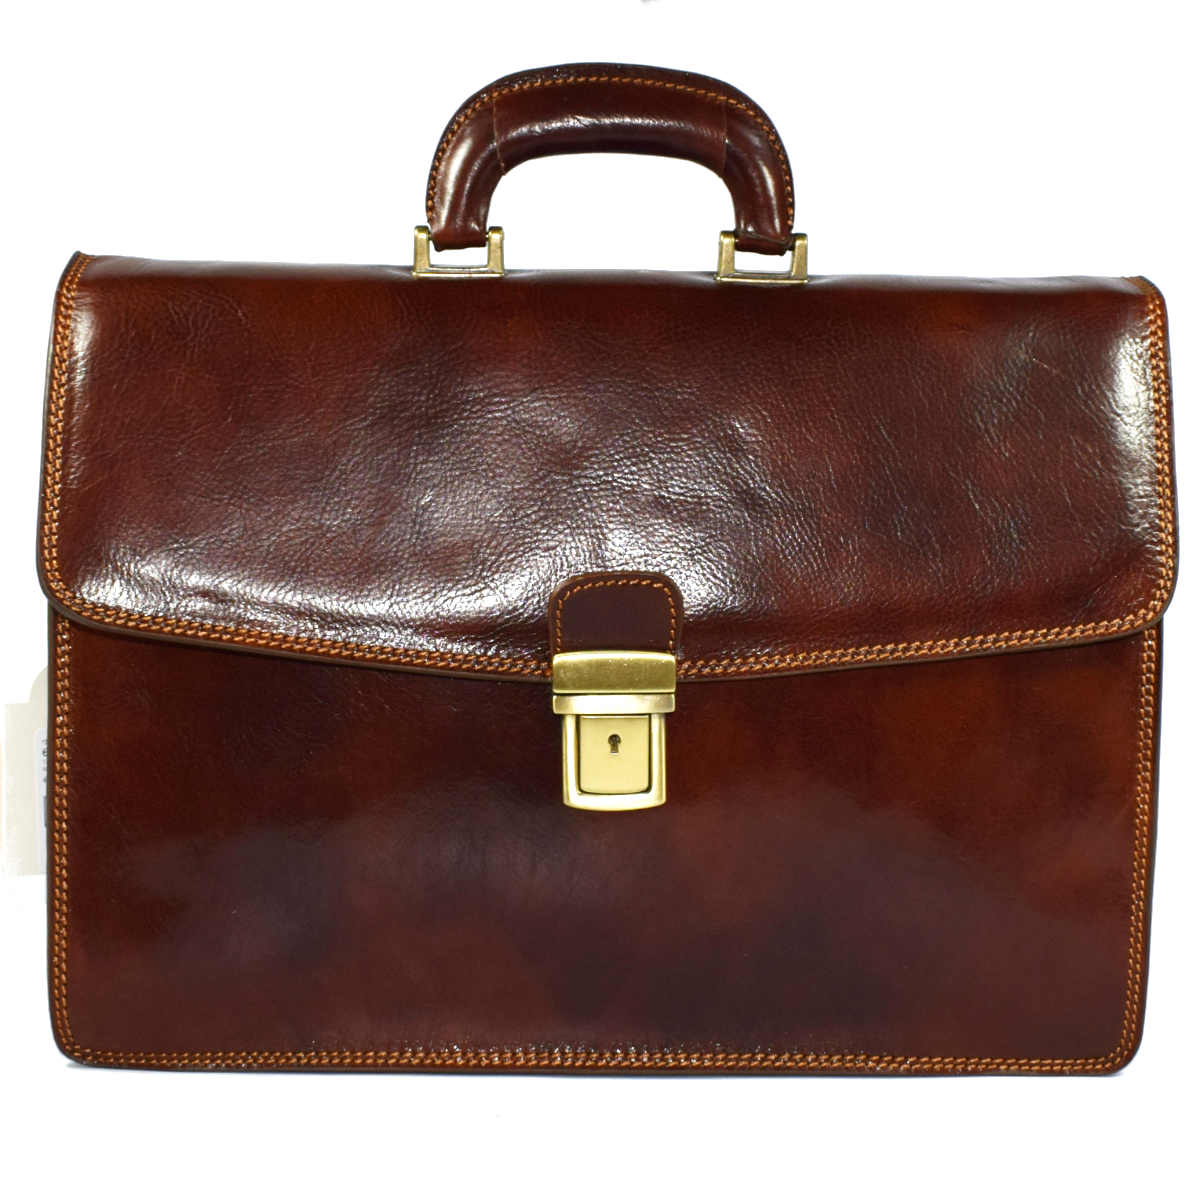 24047 PROFESSIONAL FOLDER1 COMPARTMENT by Bottega Fiorentina